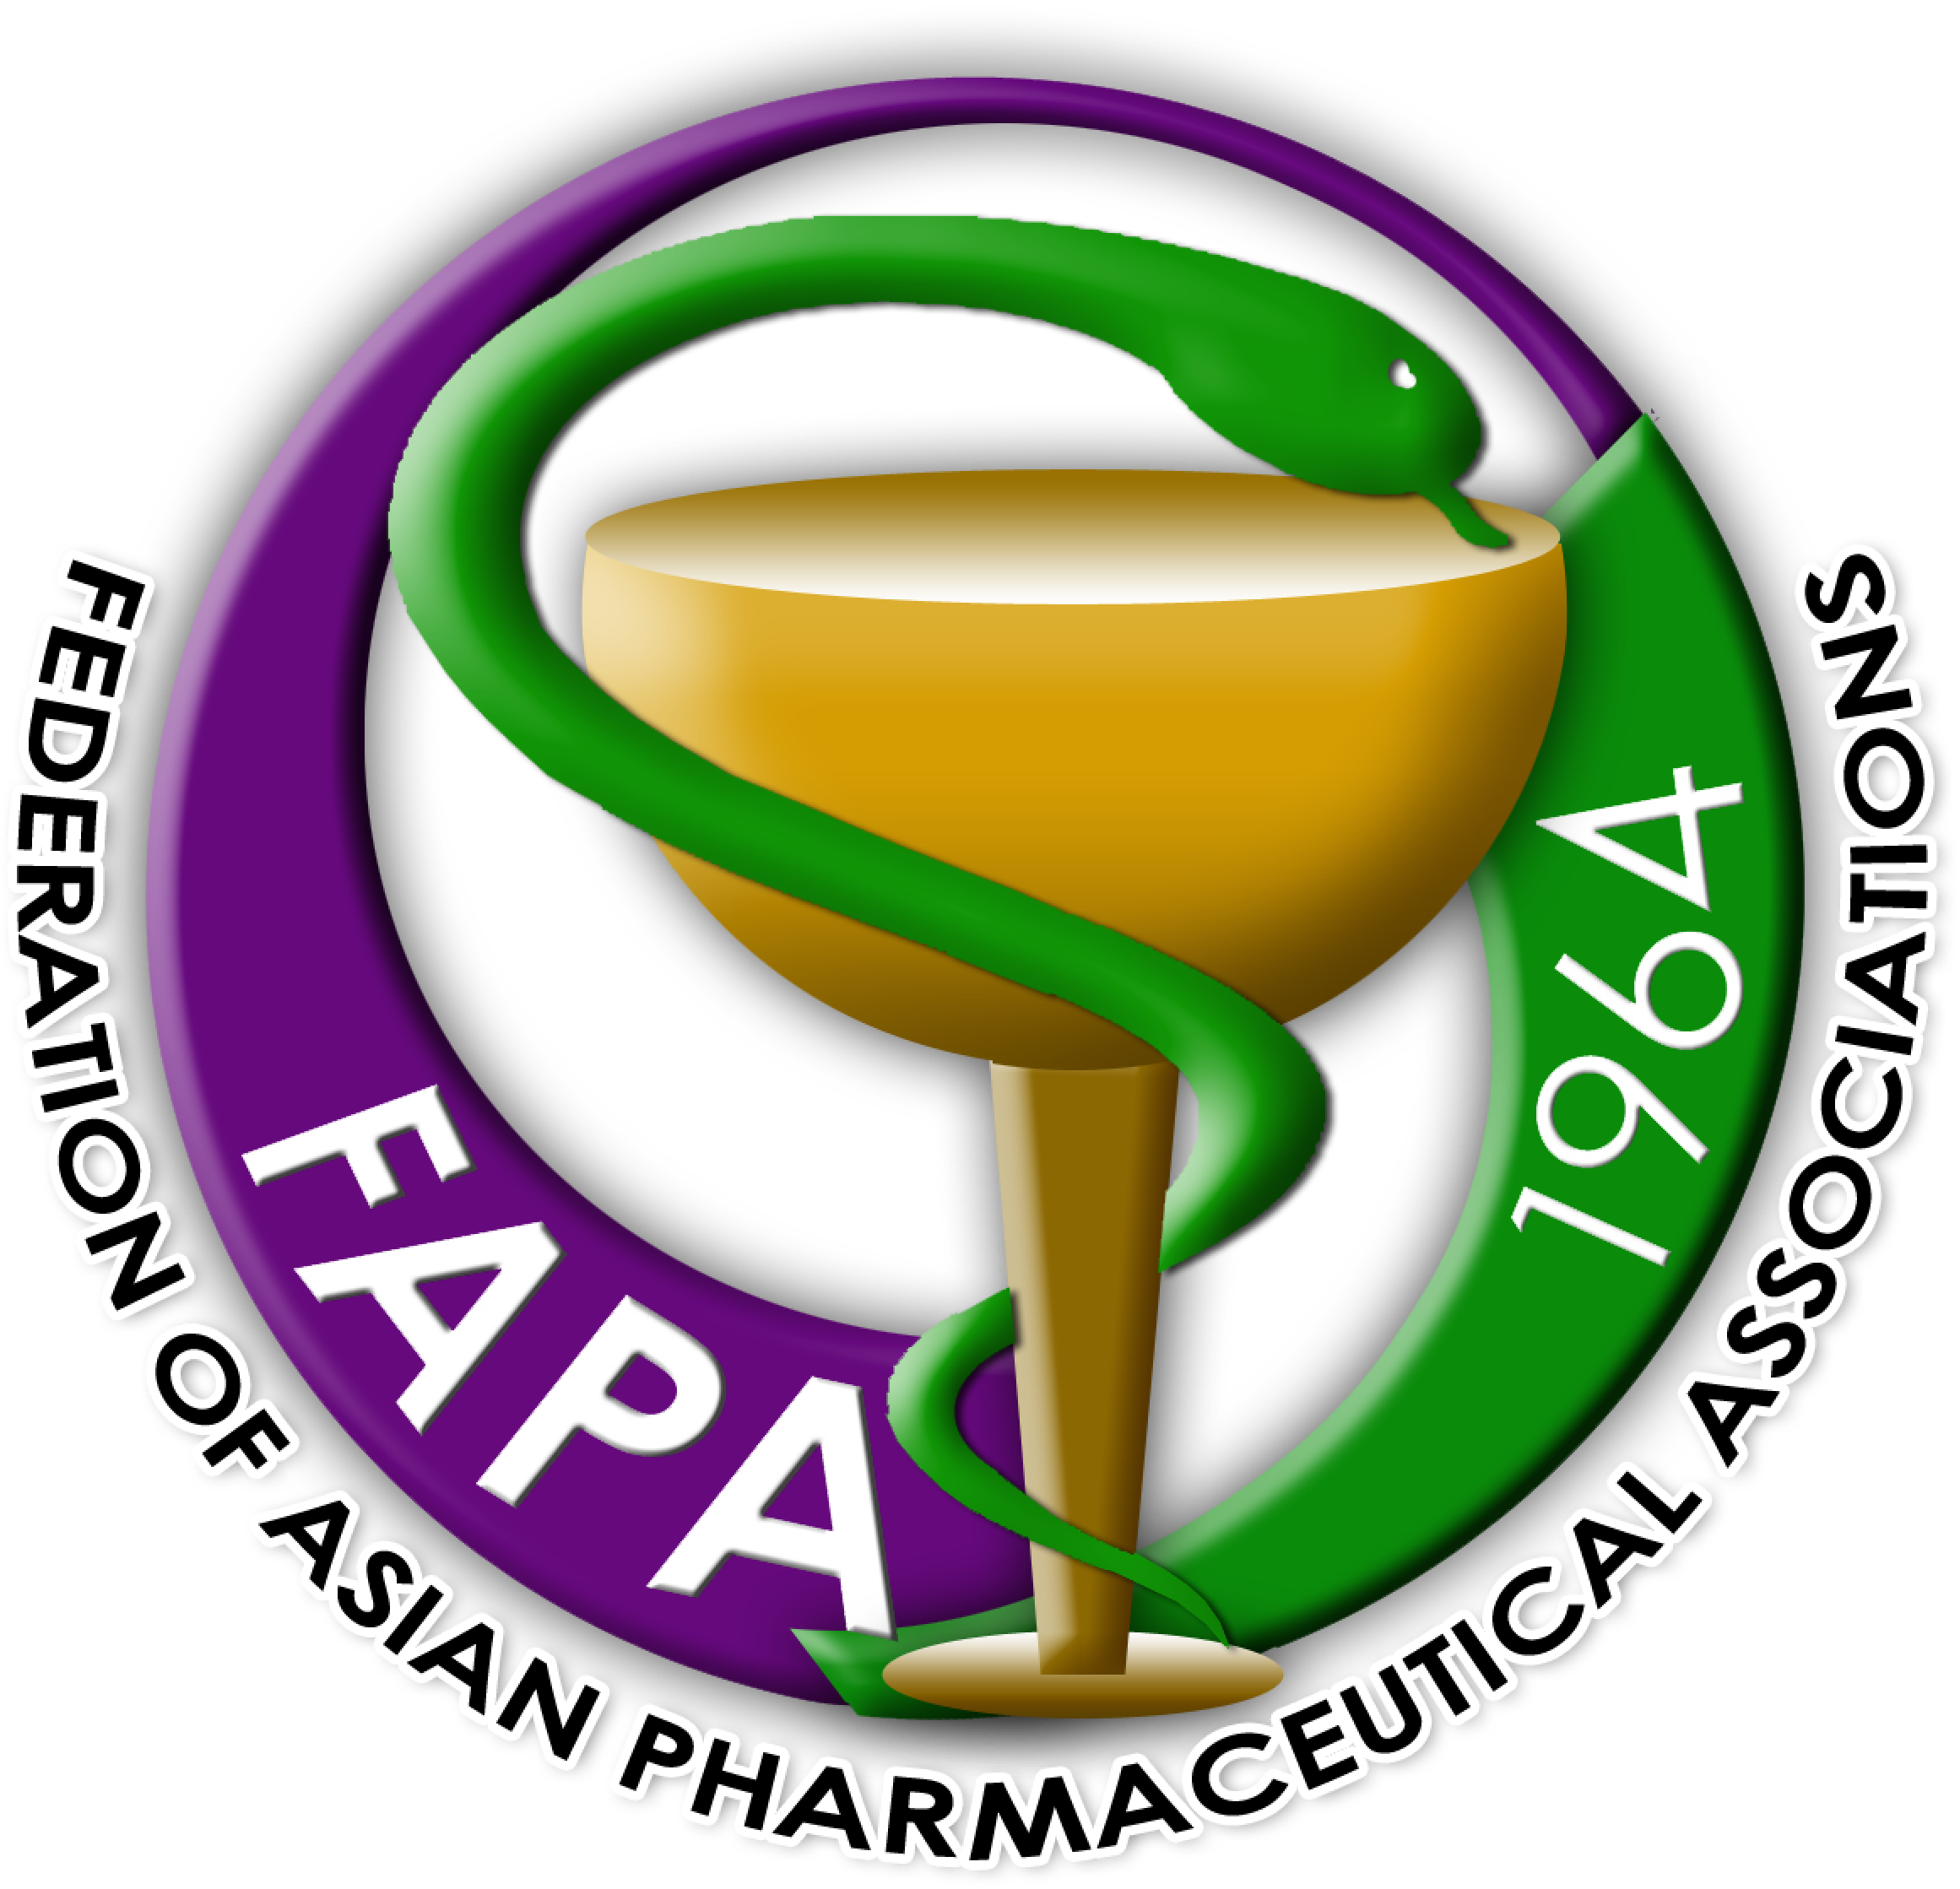 png stock Pharmacist clipart medication safety. Fapa asia we are